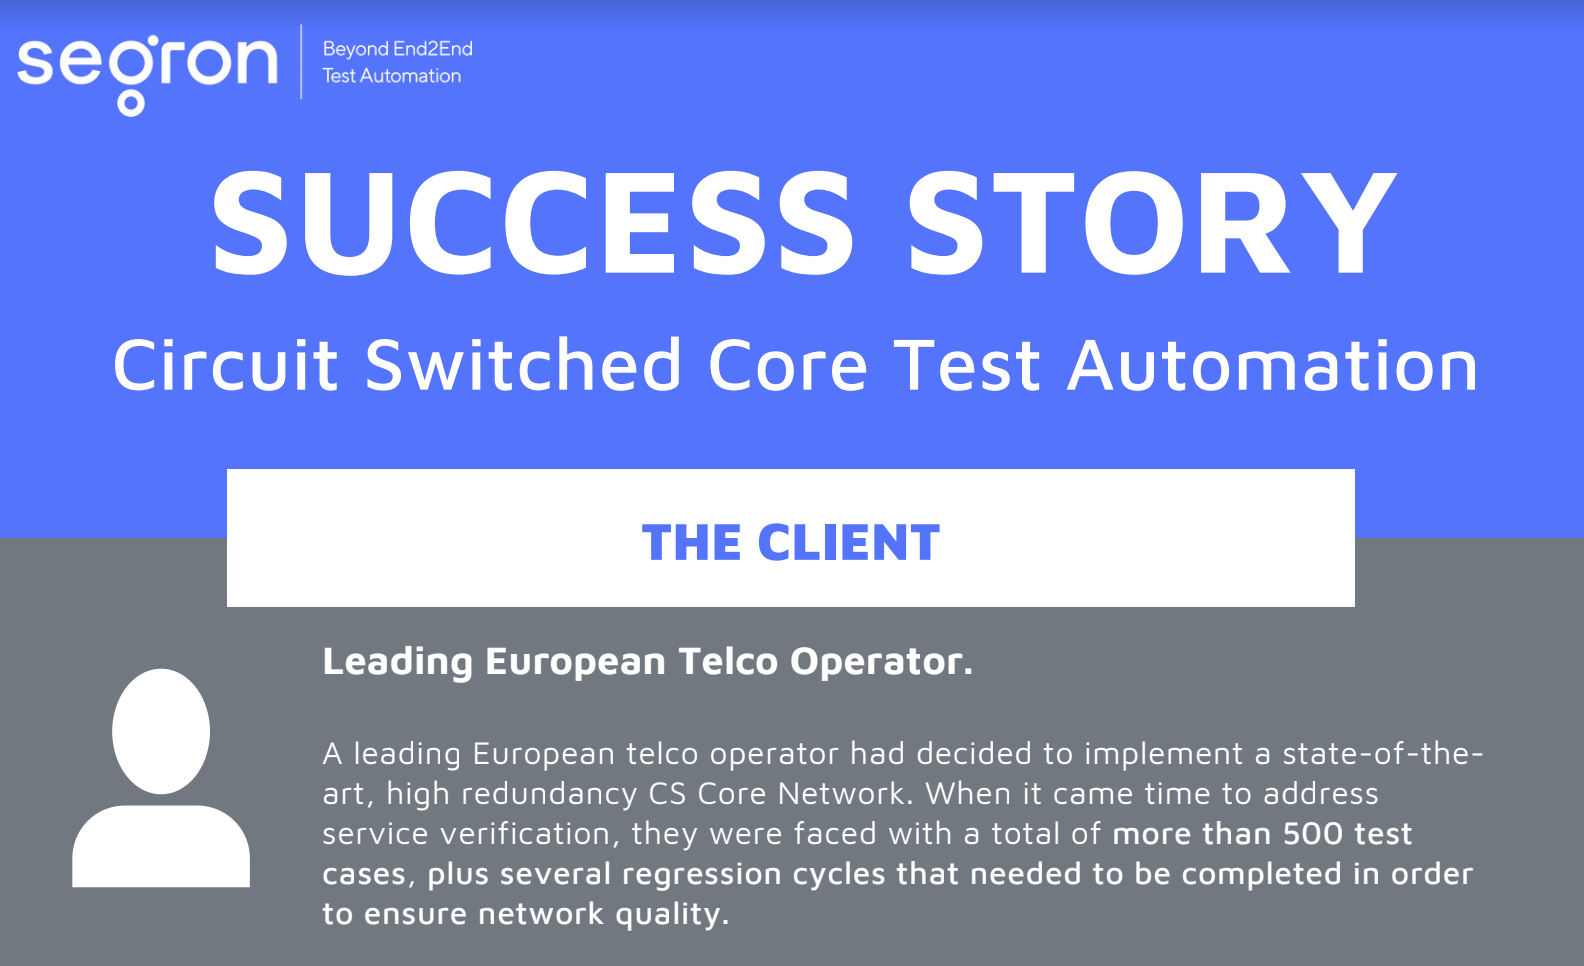 Learn more about circuit switched core test automation